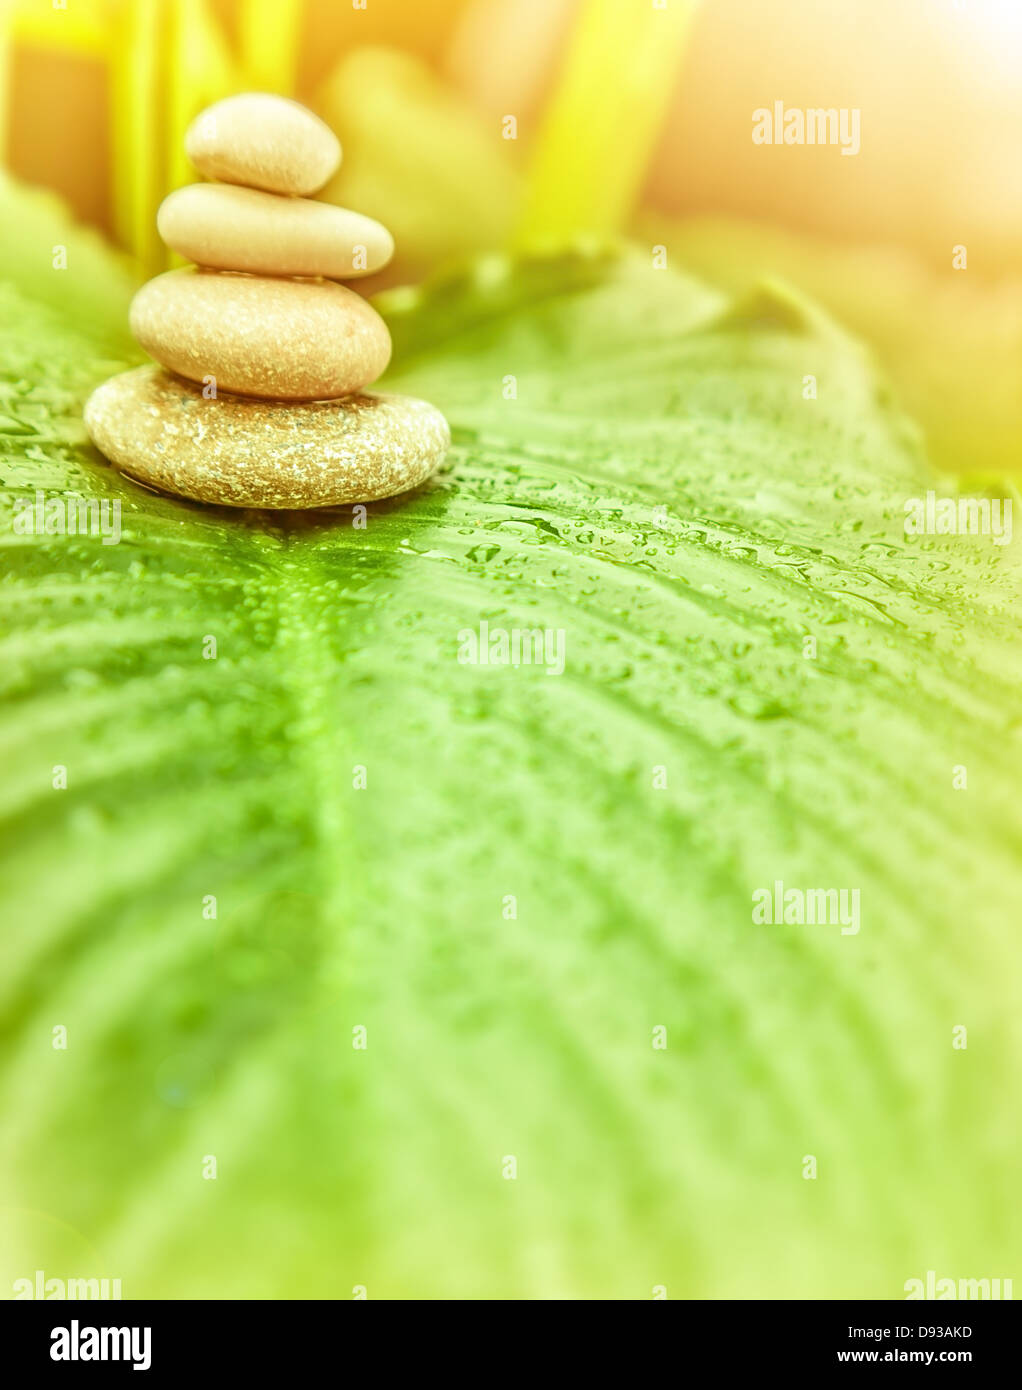 spa stones on green leaf outdoors alternative medicine zen balance